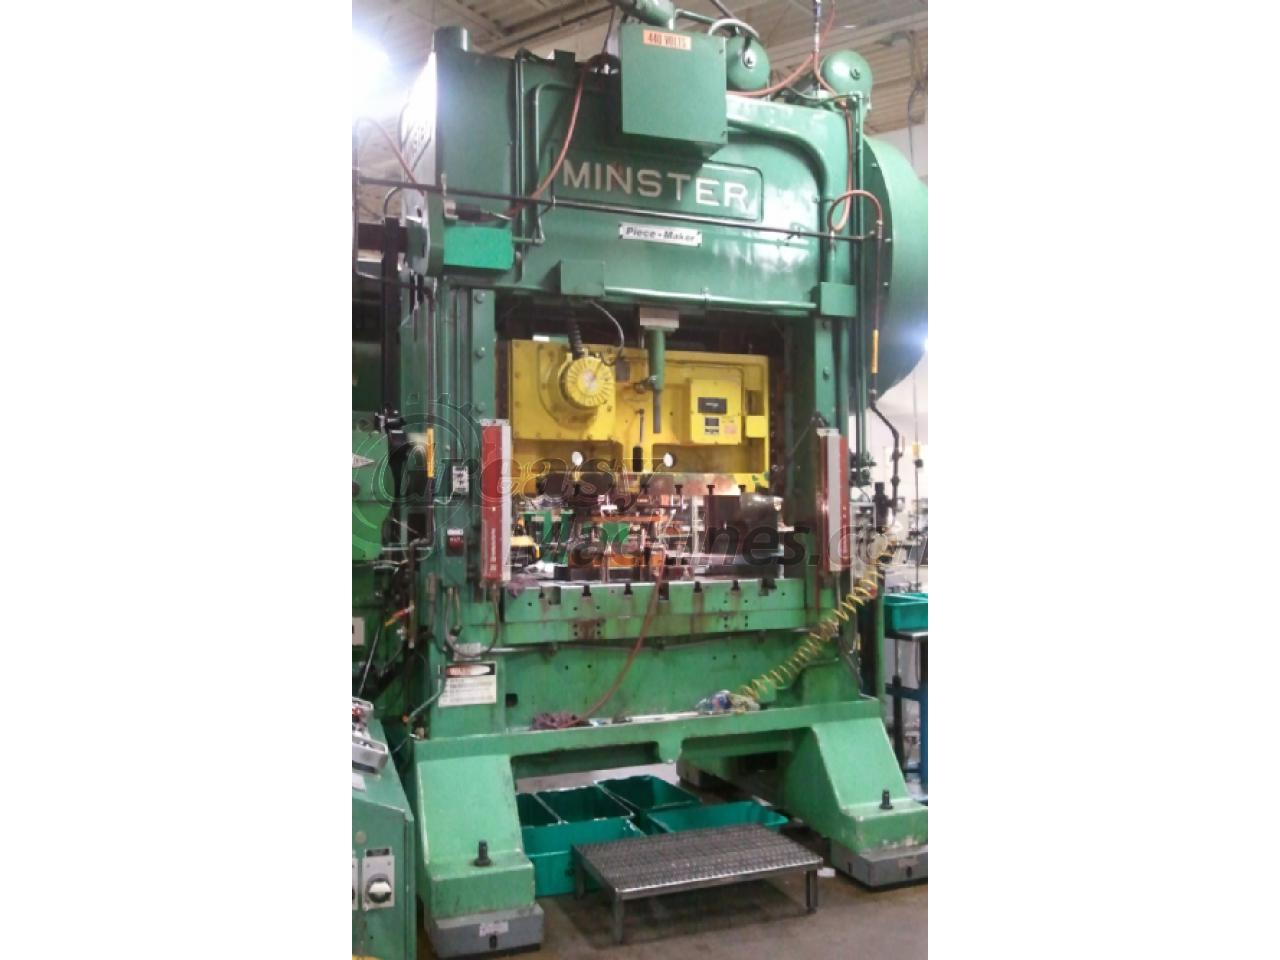 Minster P2-150-60-40 straight side press